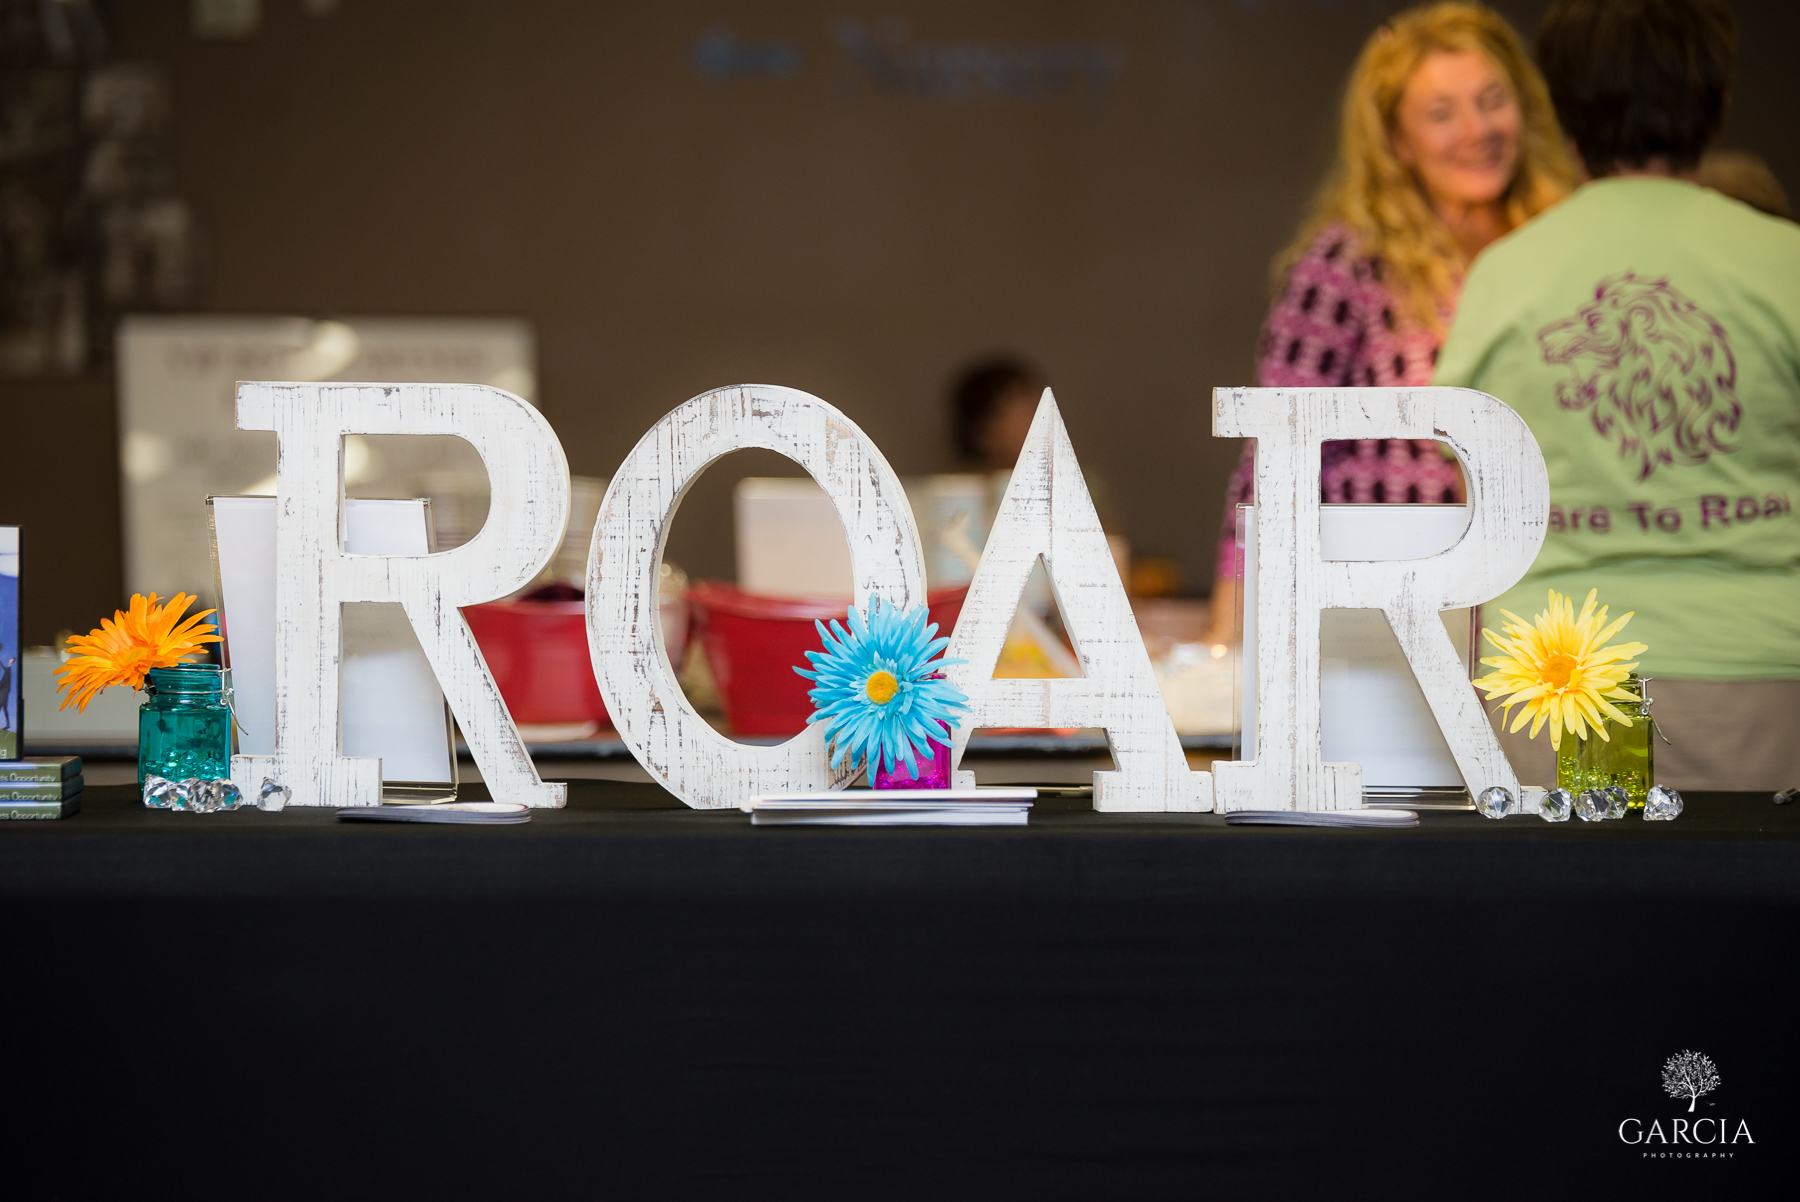 Roar-2016-Garcia-Photography-5221.jpg